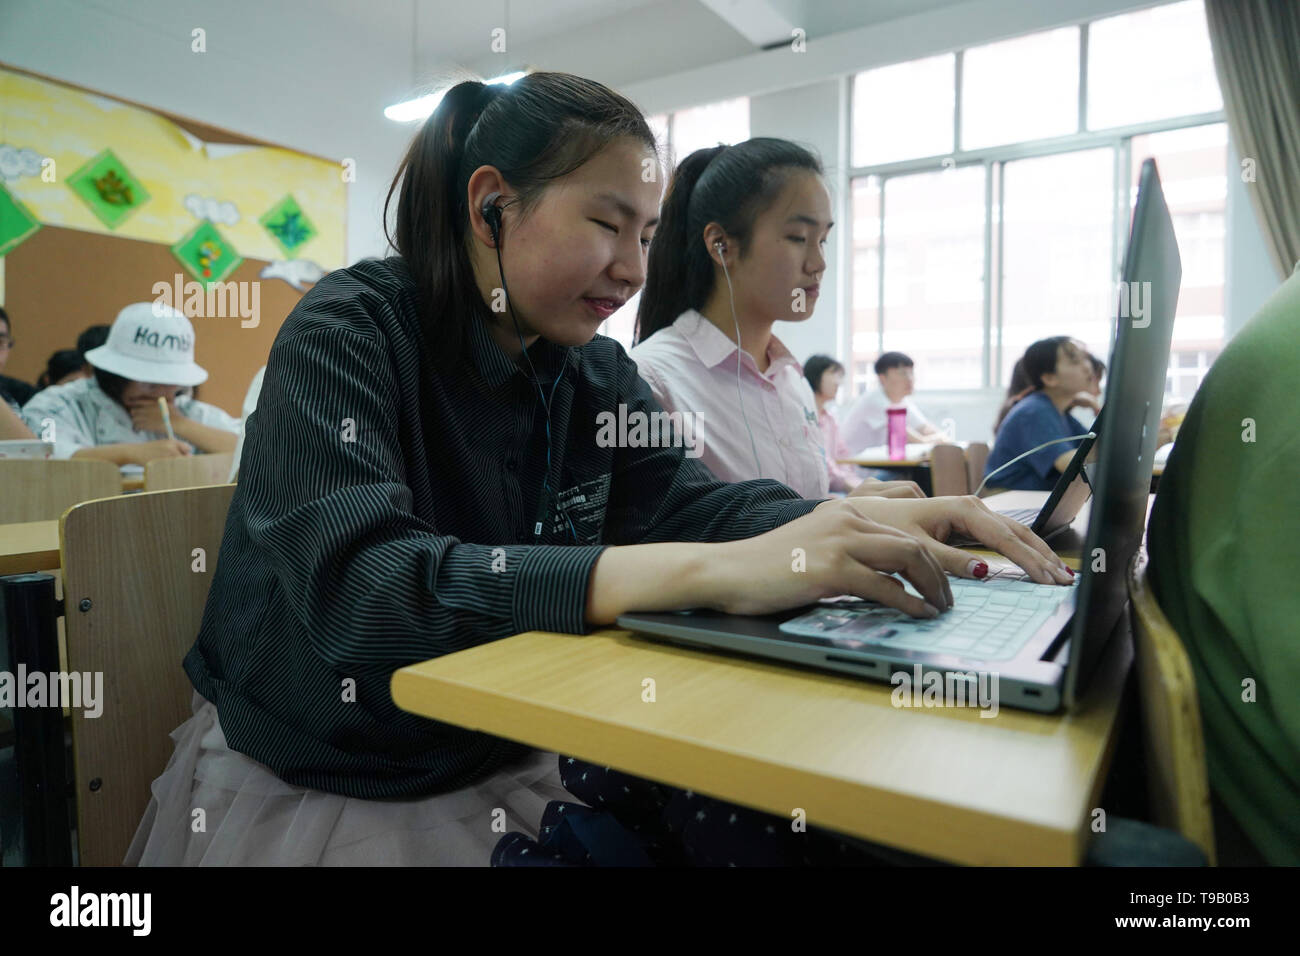 (190518) -- NANJING, May 18, 2019 (Xinhua) -- Wu Yifan(L) and Zhou Wenqing study a professional course in Nanjing Normal University of Special Education in Nanjing, east China's Jiangsu Province, May 17, 2019. Wu Yifan, 22, and Zhou Wenqing, 21, are schoolmates in Nanjing Normal University of Special Education. Both of them lost eyesight in their childhood.   In their spare time, Wu likes doing makeup, paper-cutting as well as playing the Guzheng, Chinese Zither. While Zhou enjoys playing the piano. Zhou once developed a computer game for visually impaired people.   The two girls have passed t - Stock Image